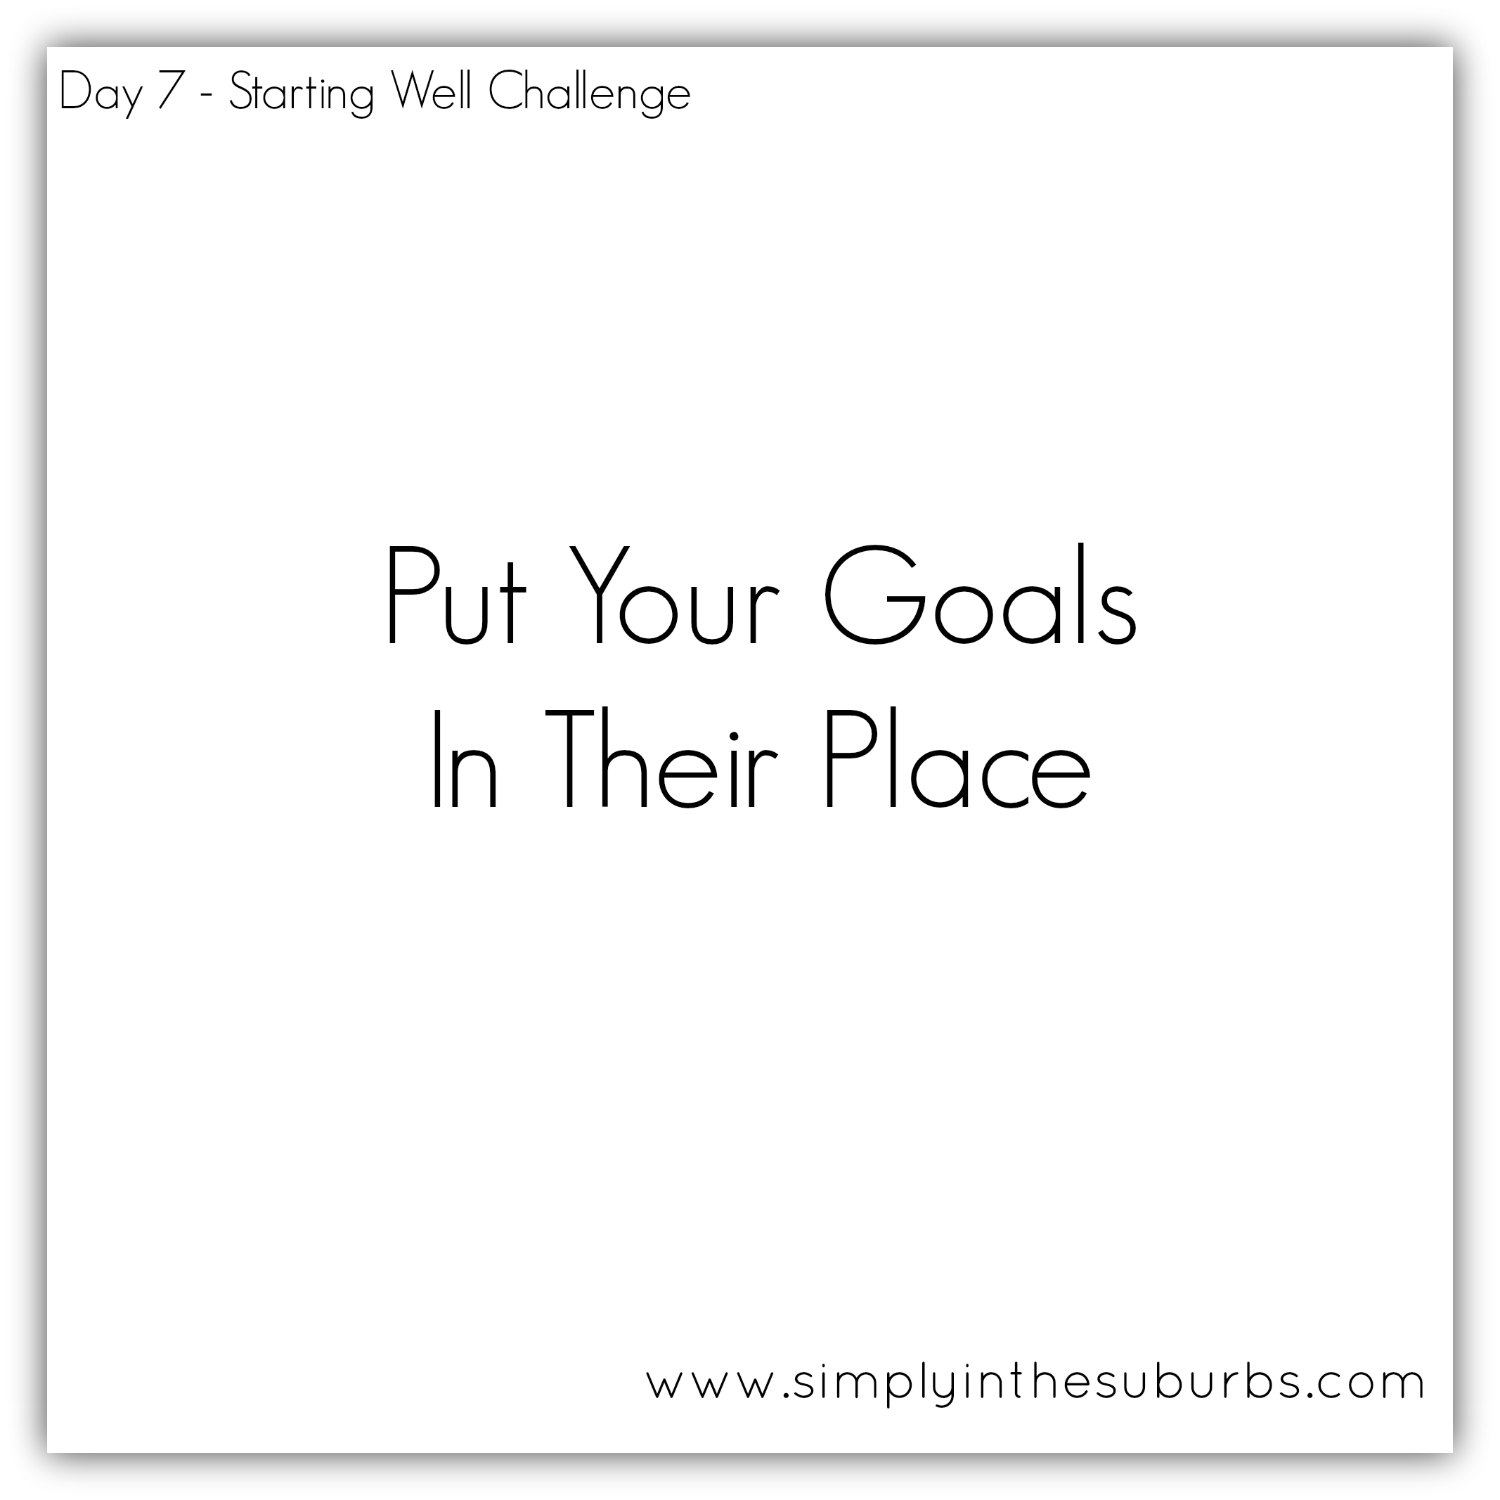 Day 7 Starting Well Challenge Putting Your Goals In Their Place